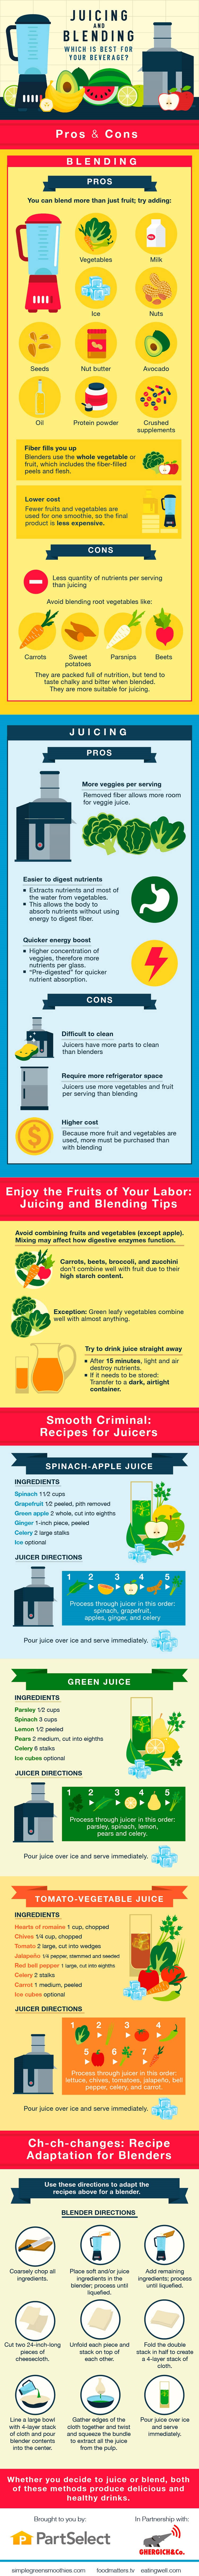 Benefits of Juicing and Blending - Infographic